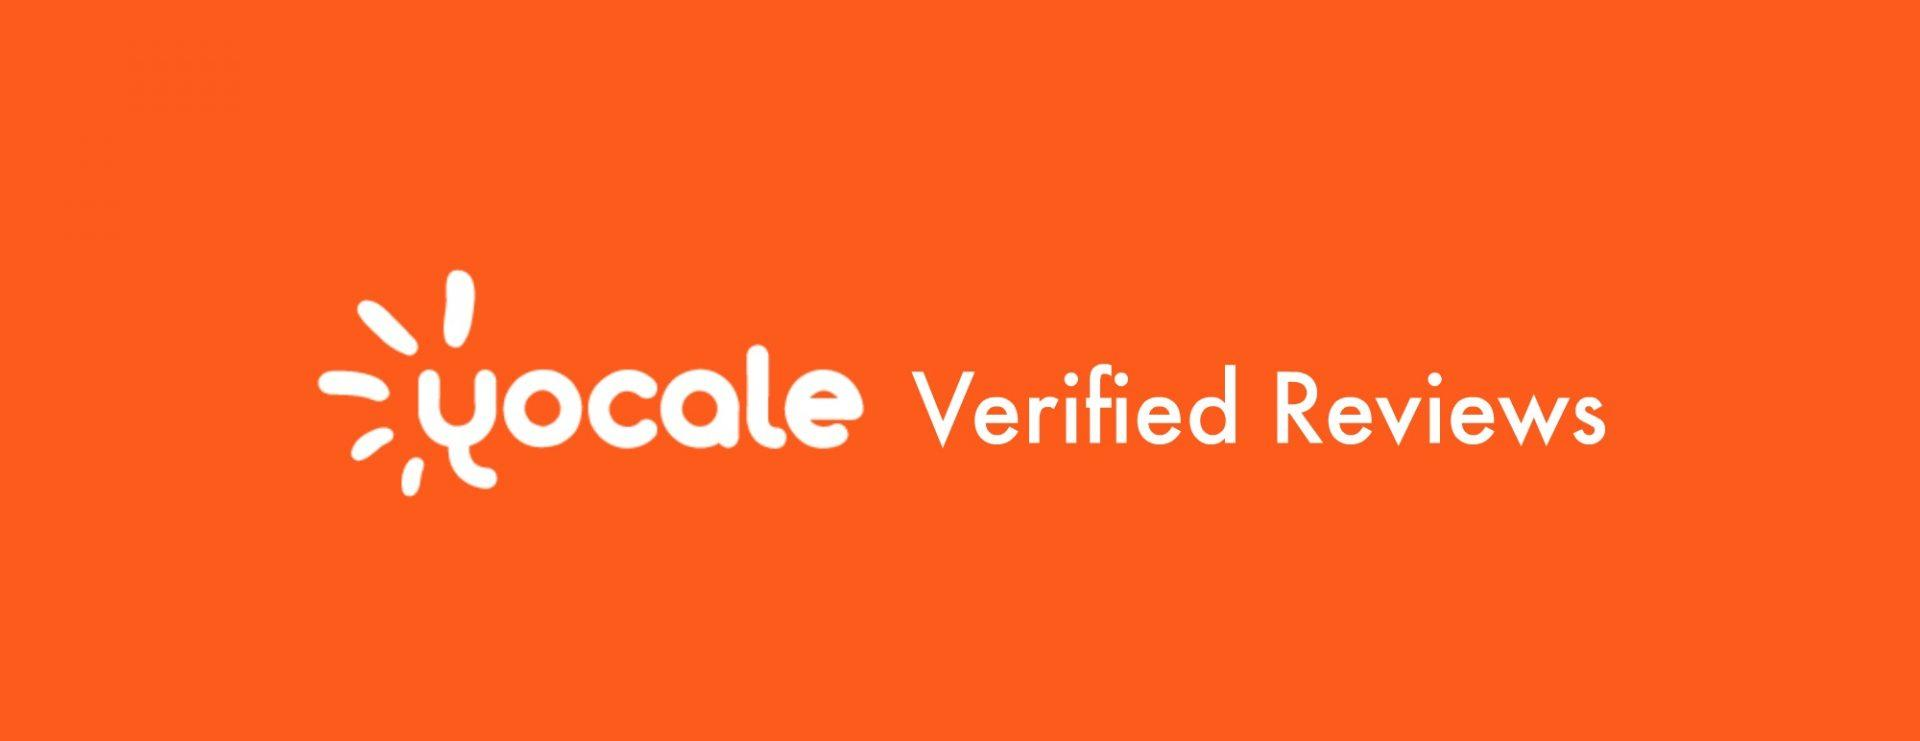 yocale verified reviews